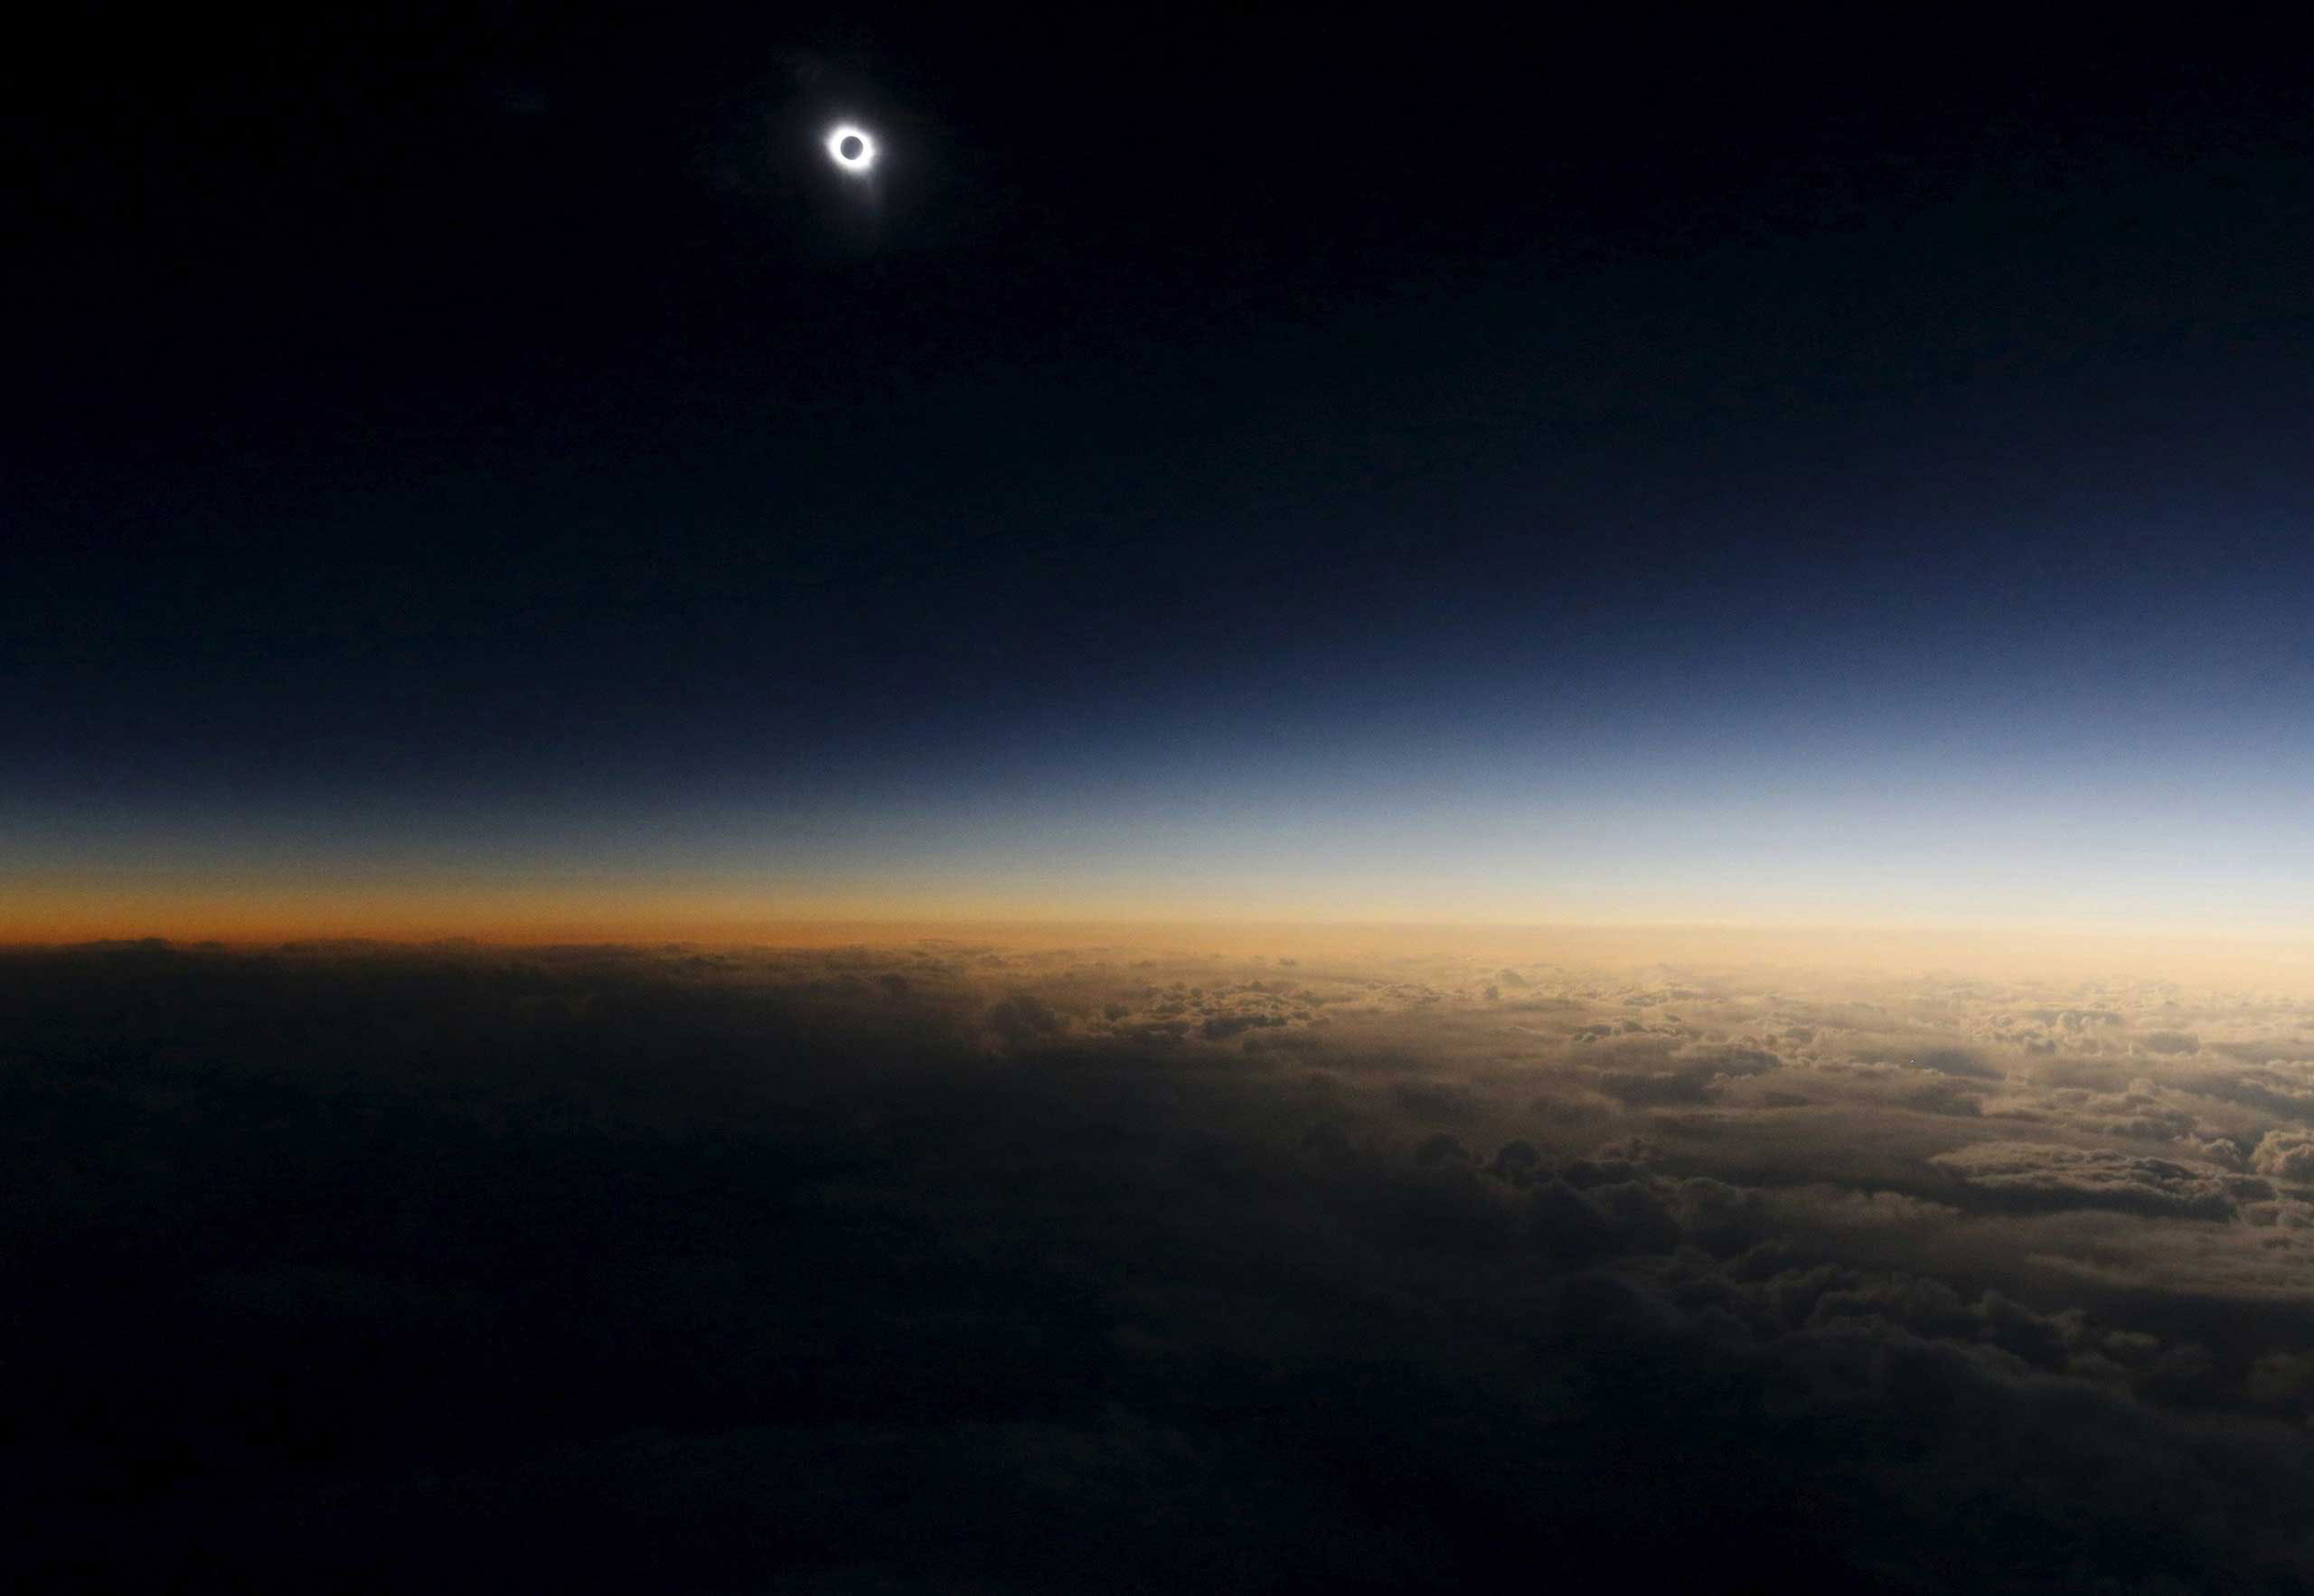 A view from a plane during the so-called  Eclipse Flight  from the Russian city of Murmansk to observe the solar eclipse above the neutral waters of the Norwegian Sea. March 20, 2015.